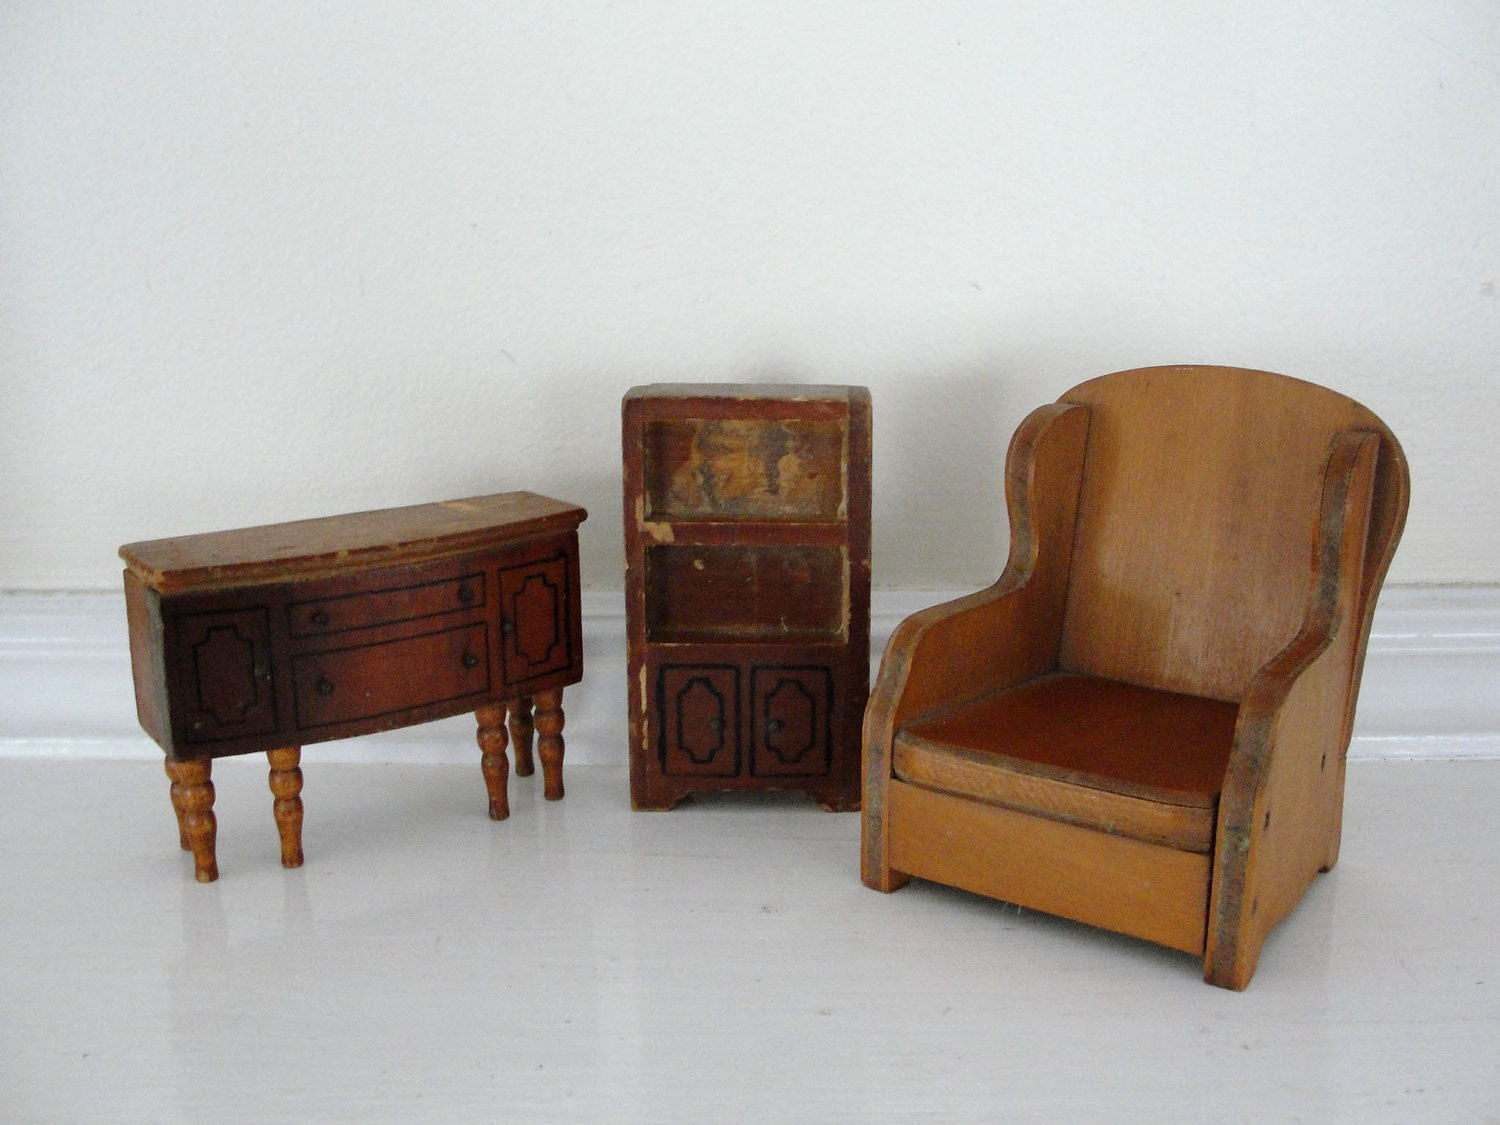 Vintage wooden doll house furniture vintage doll house chair Old wooden furniture